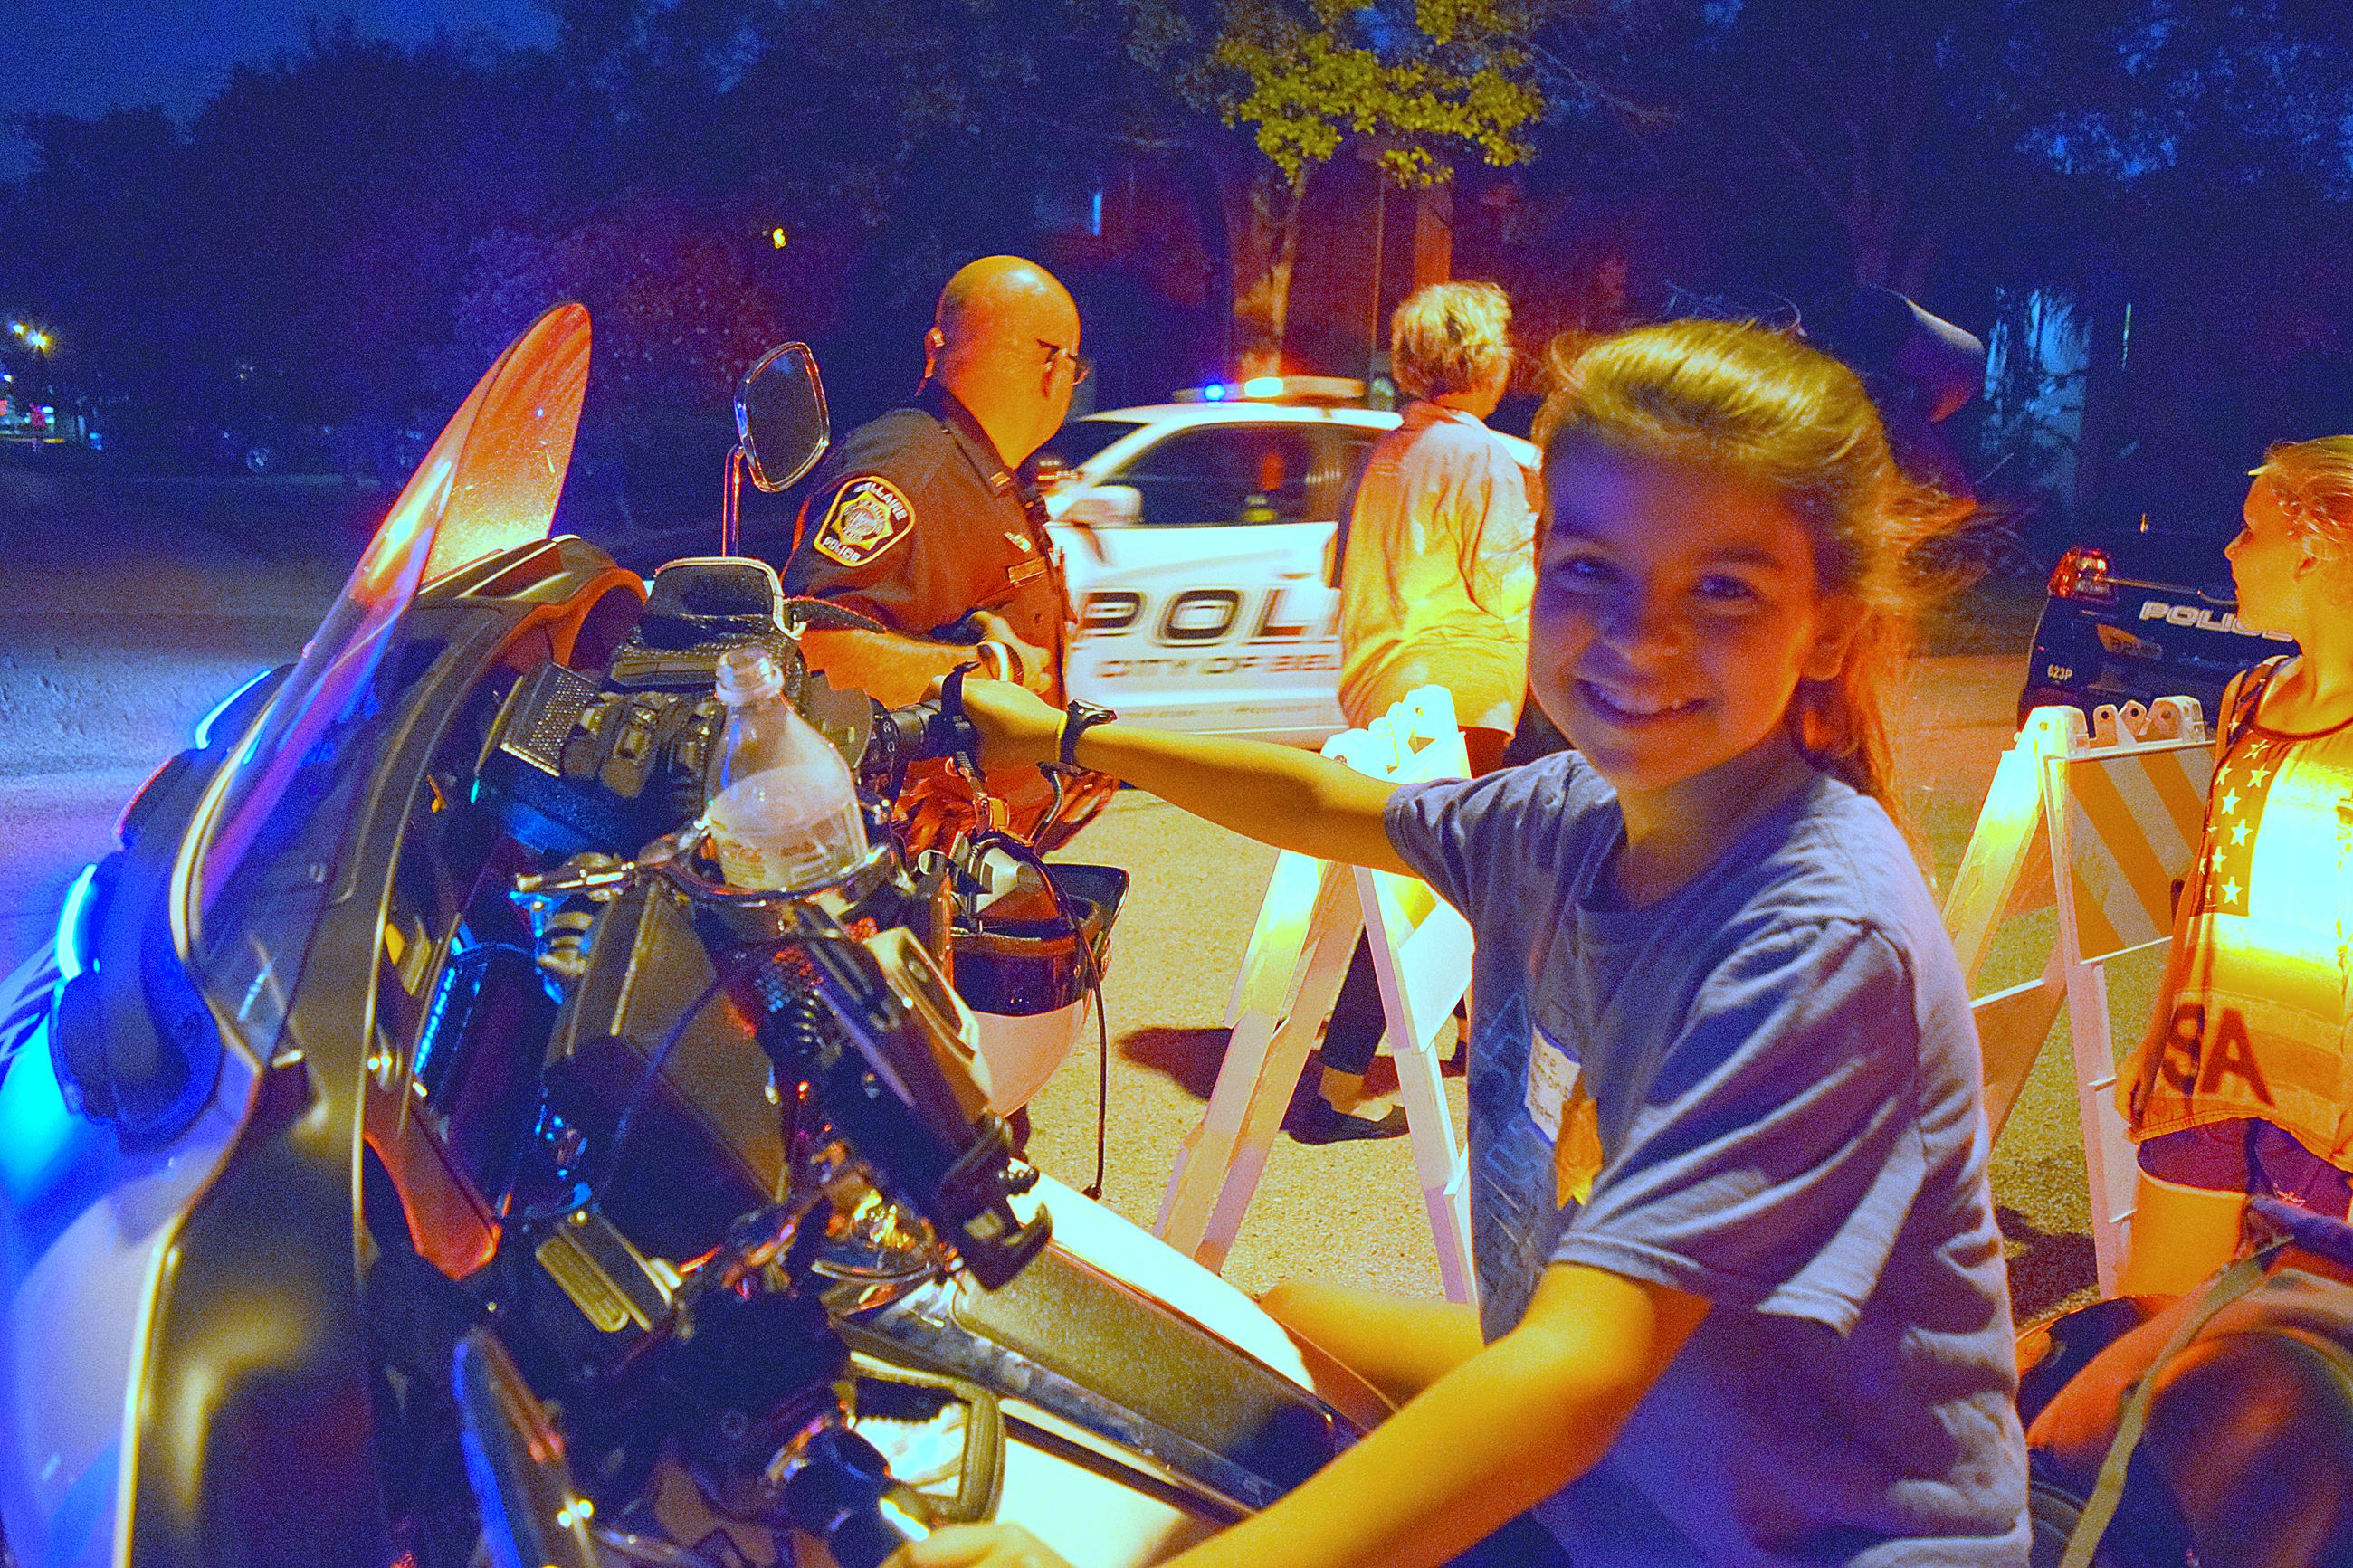 Little girl poses on Police motorcycle